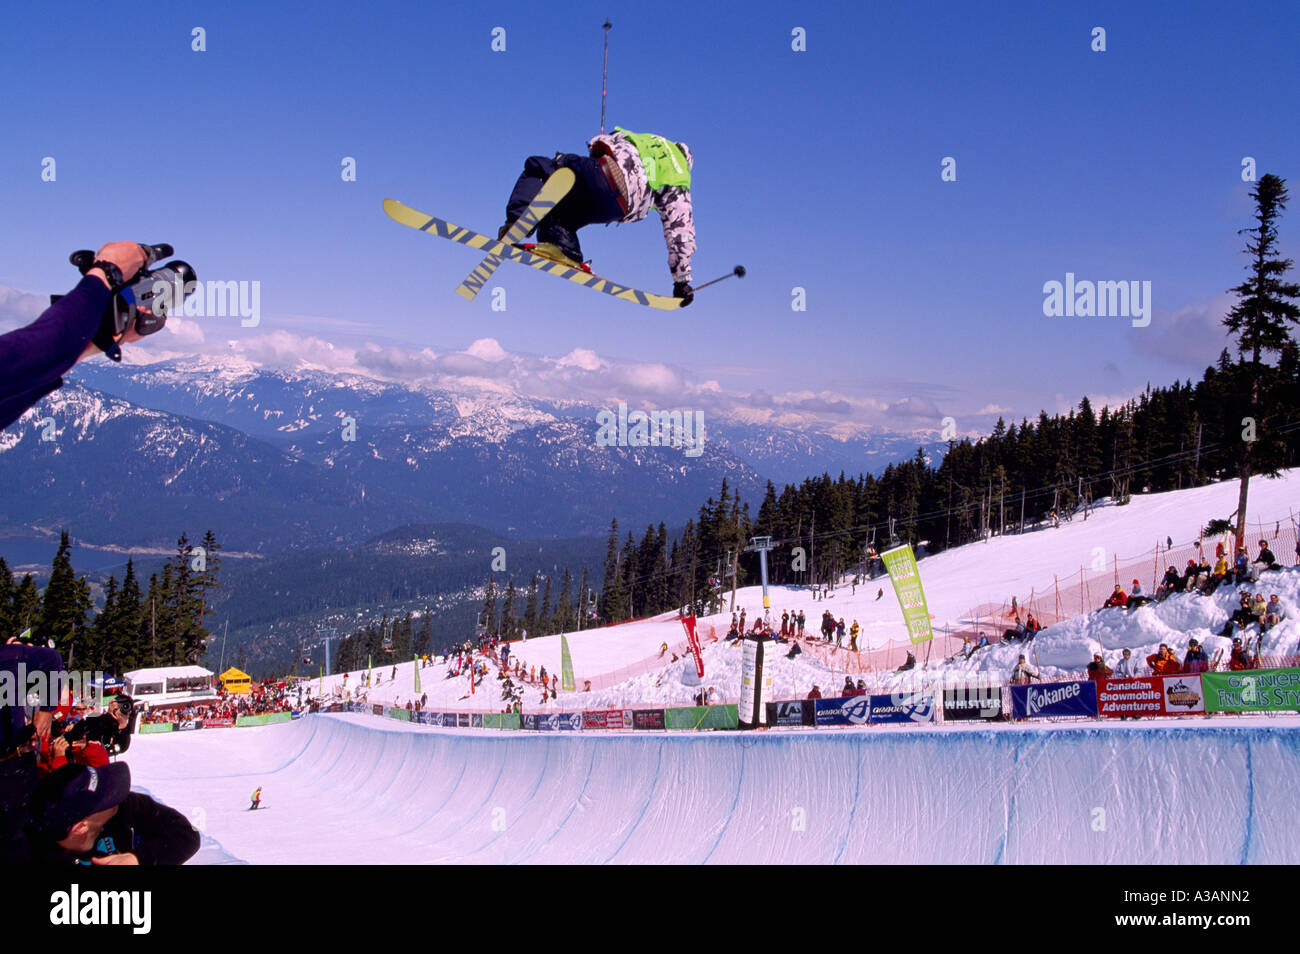 Whistler, BC, British Columbia, Canada - A Freestyle Skier competing at Superpipe Competition at Halfpipe on Blackcomb Mountain - Stock Image